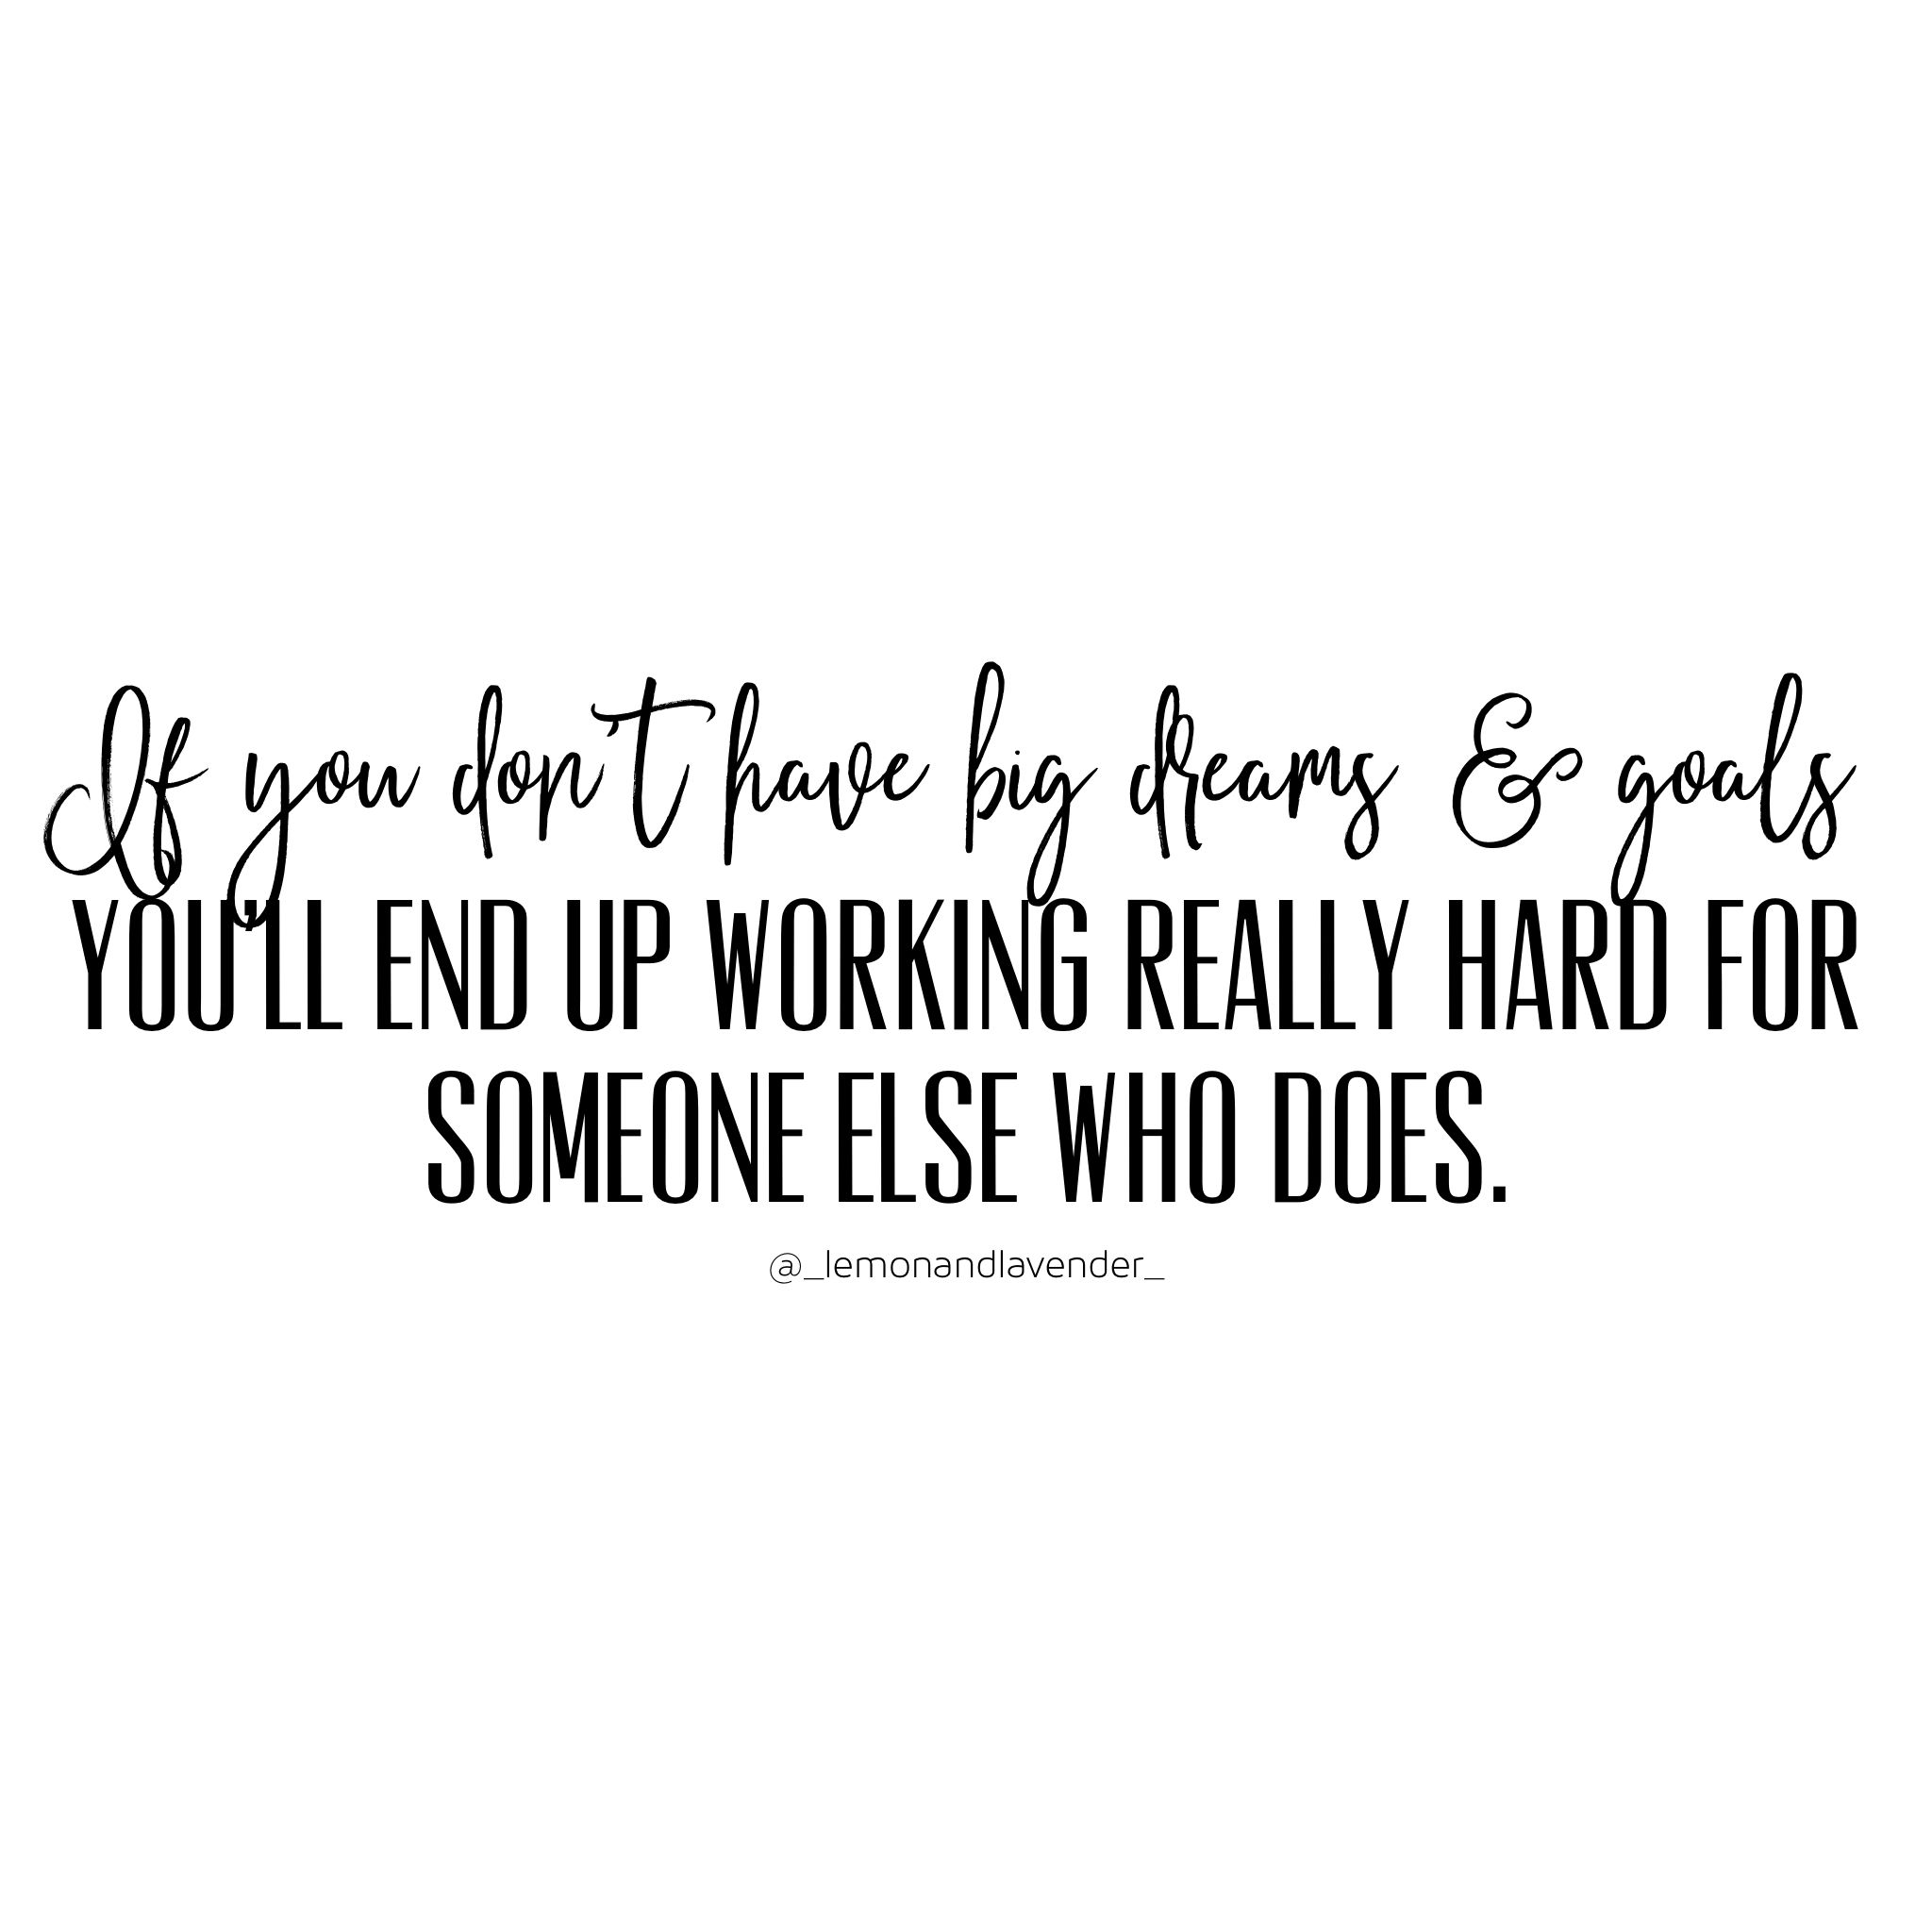 Quotes instagram graphics black and white fonts engagement posts facebook posts motivational quotes success quotes kids and family parenting